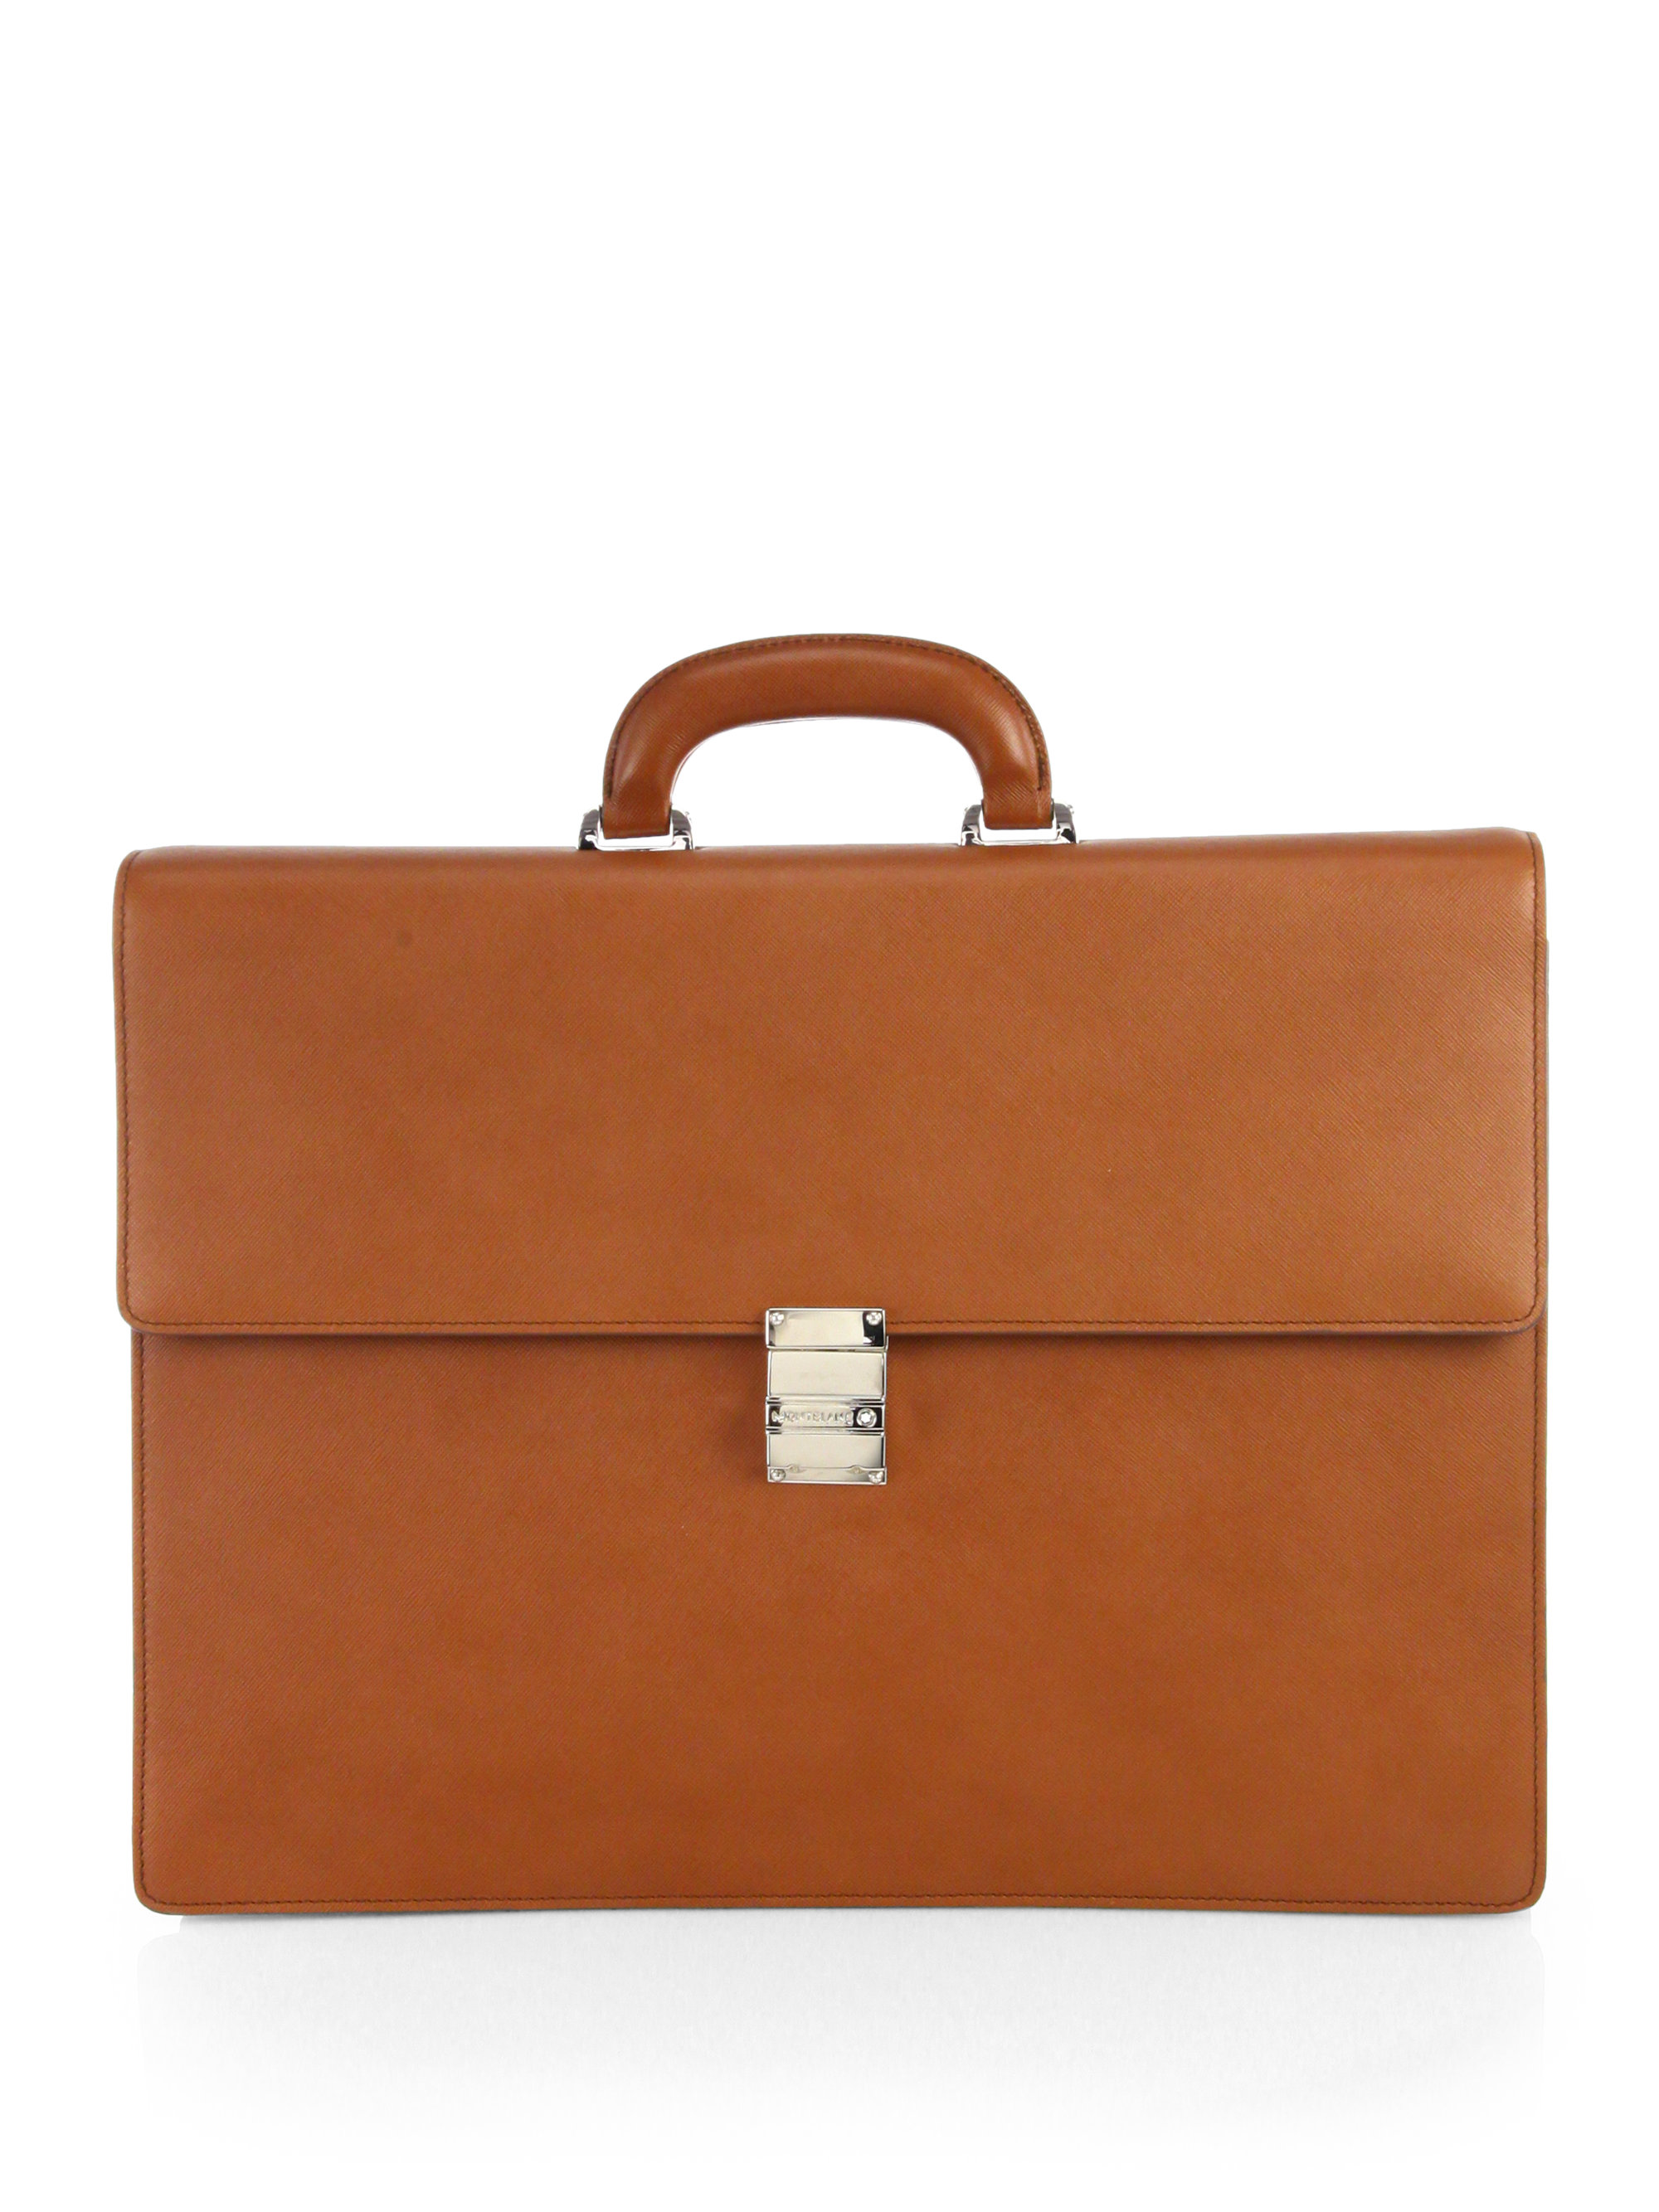 brown leather briefcase photo - 1